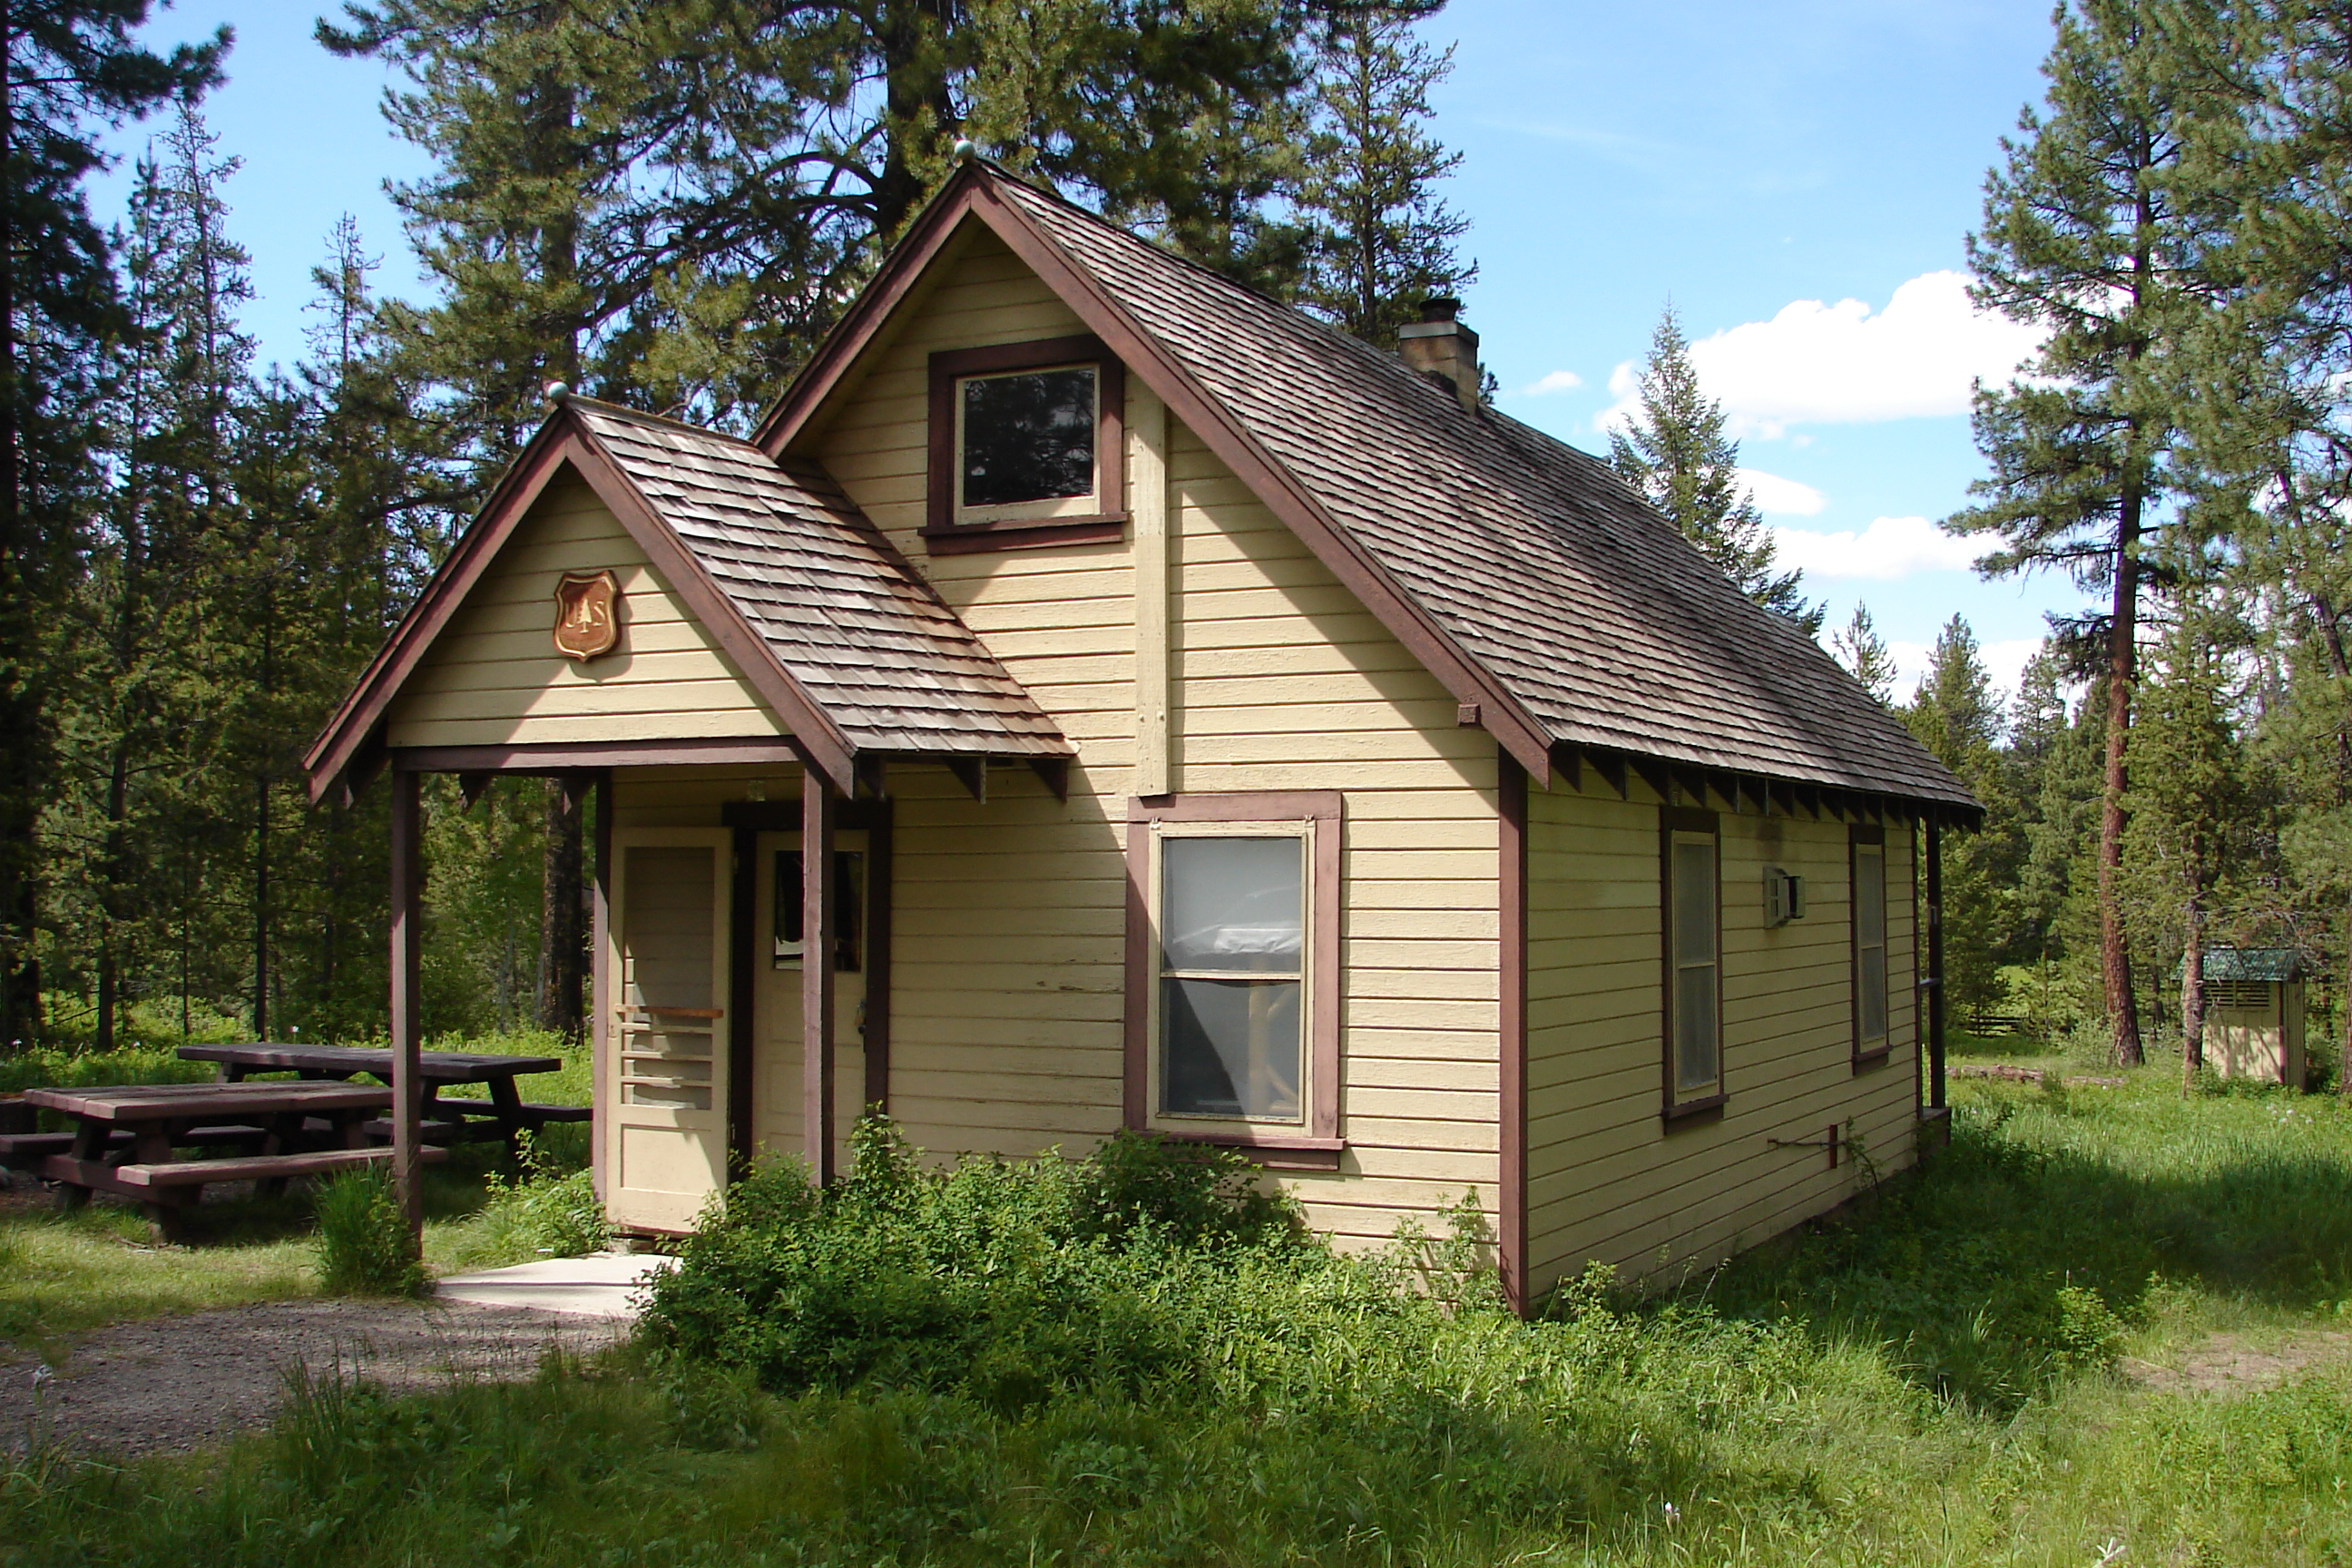 cabins in vacation weekend rental travefy colorado rentals amazing cabin bachelorette party